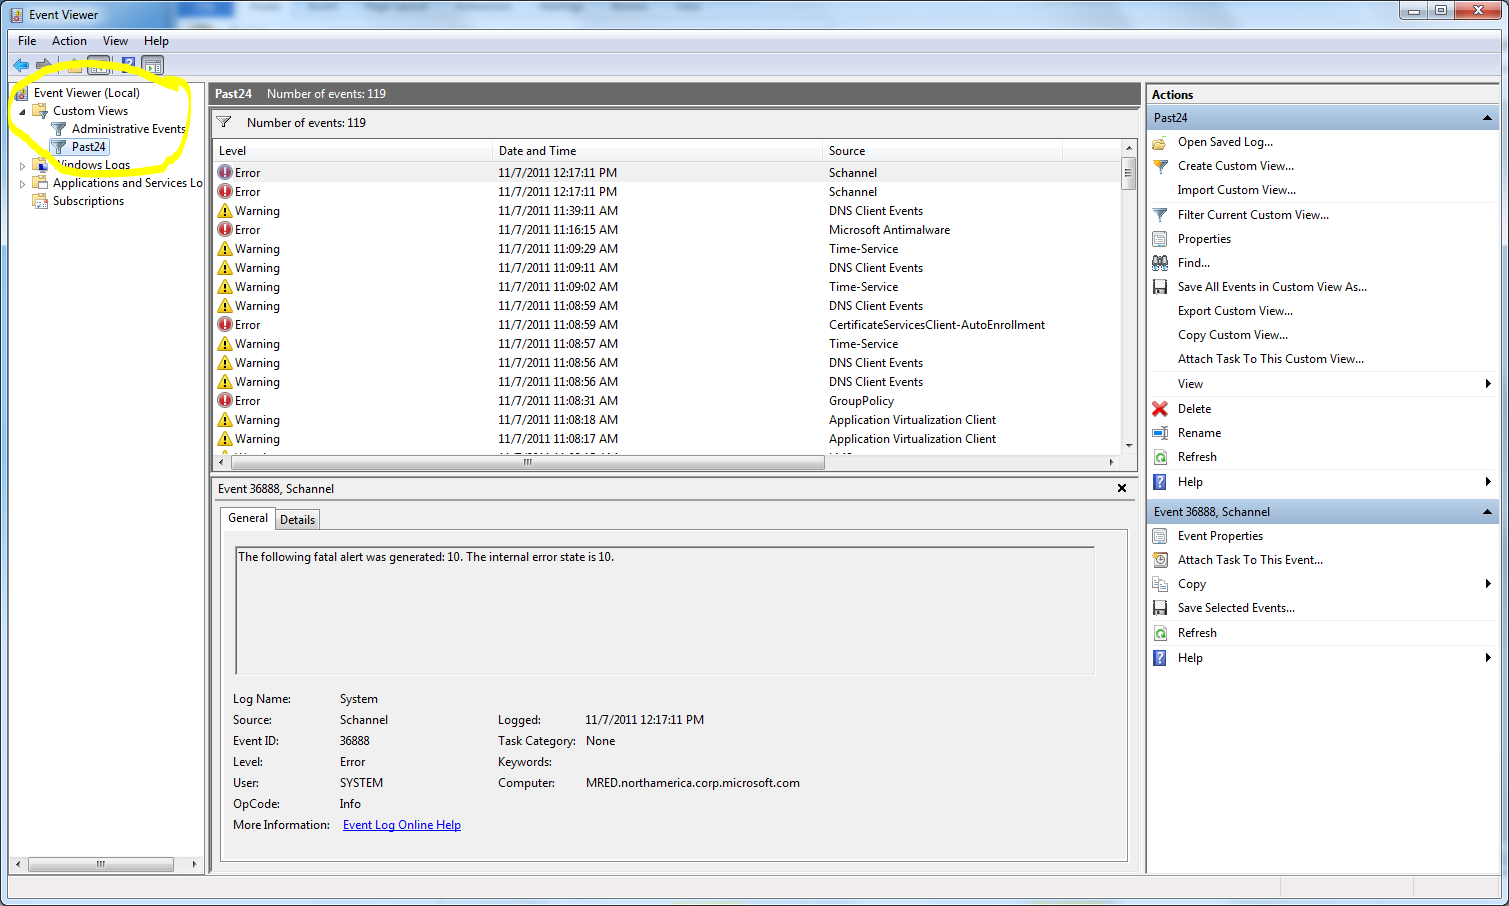 Image of Custom Views in Event Viewer